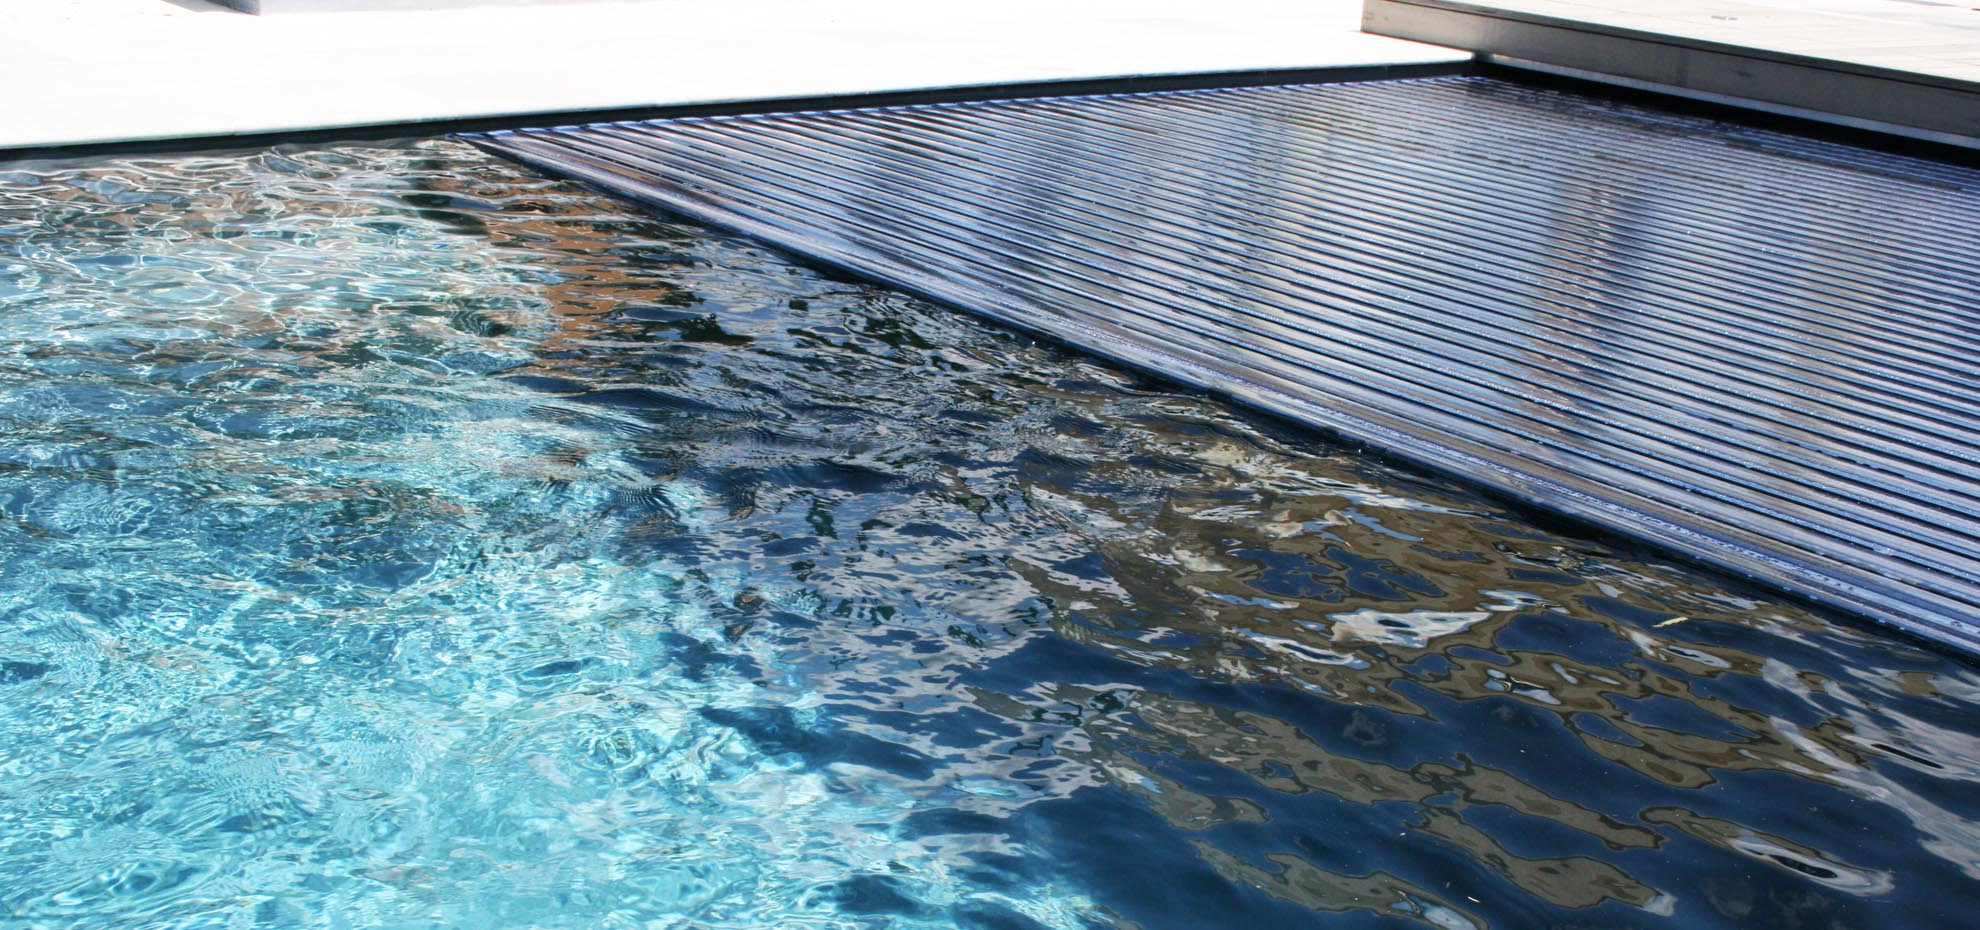 The Reflection Auto Cover Fiberglass pool by Leisure Pools